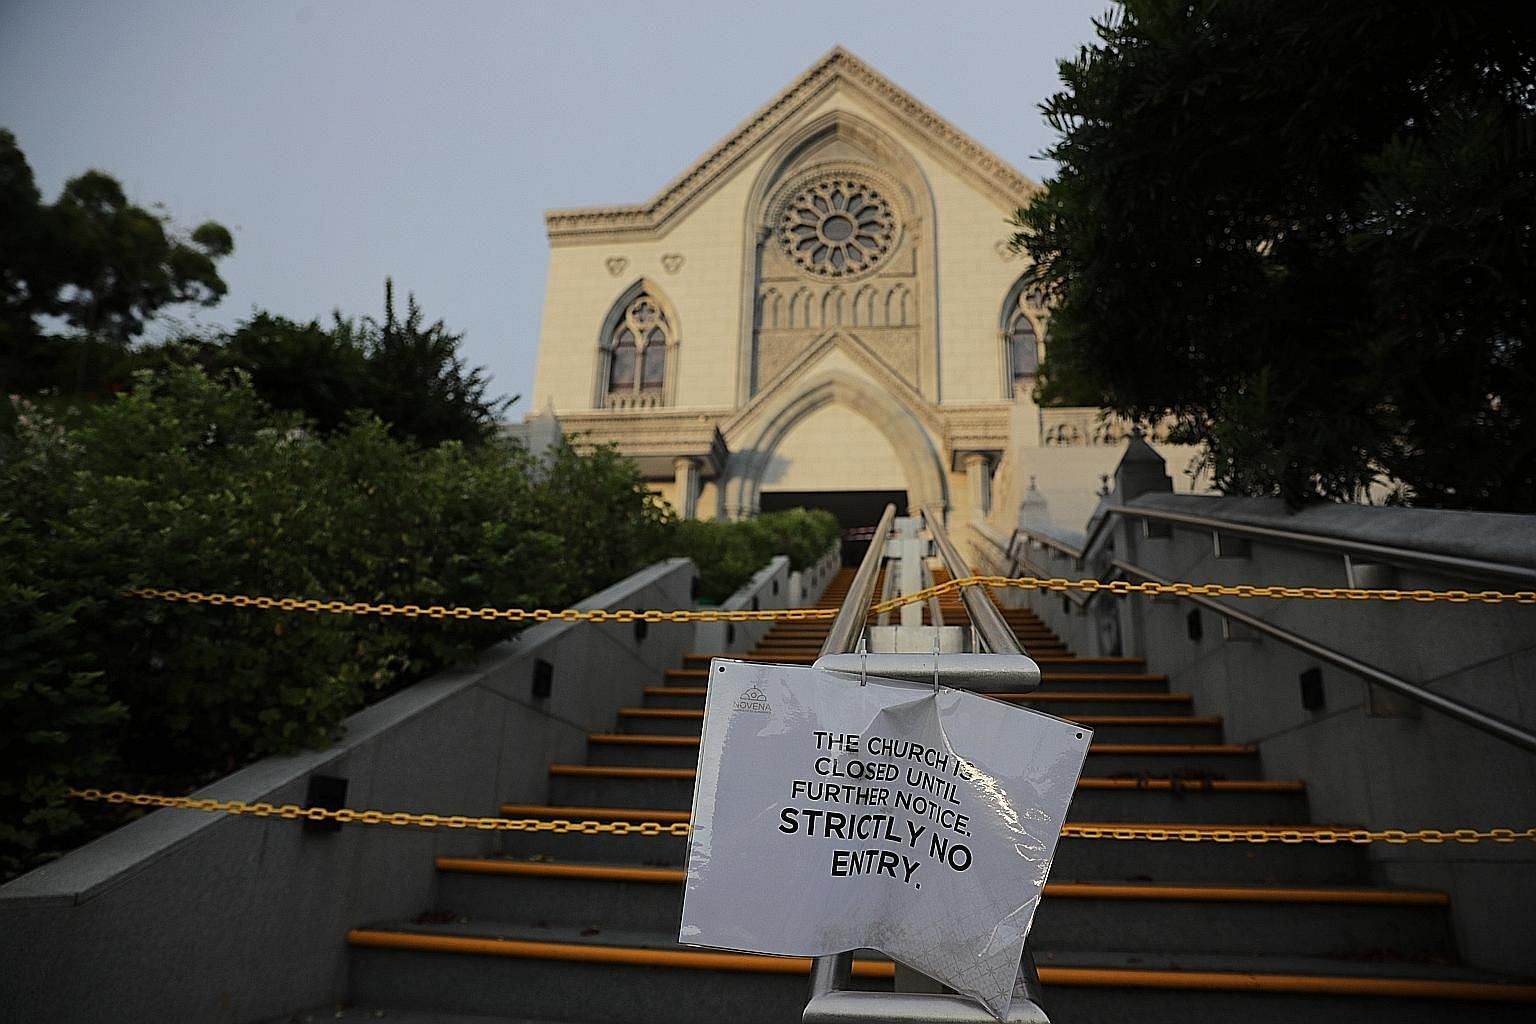 The Church of St Alphonsus, popularly known as Novena Church, is among places of worship that had to close fully after the circuit breaker measures kicked in on April 7. When these places reopen for private worship from June 2, there will be a limit